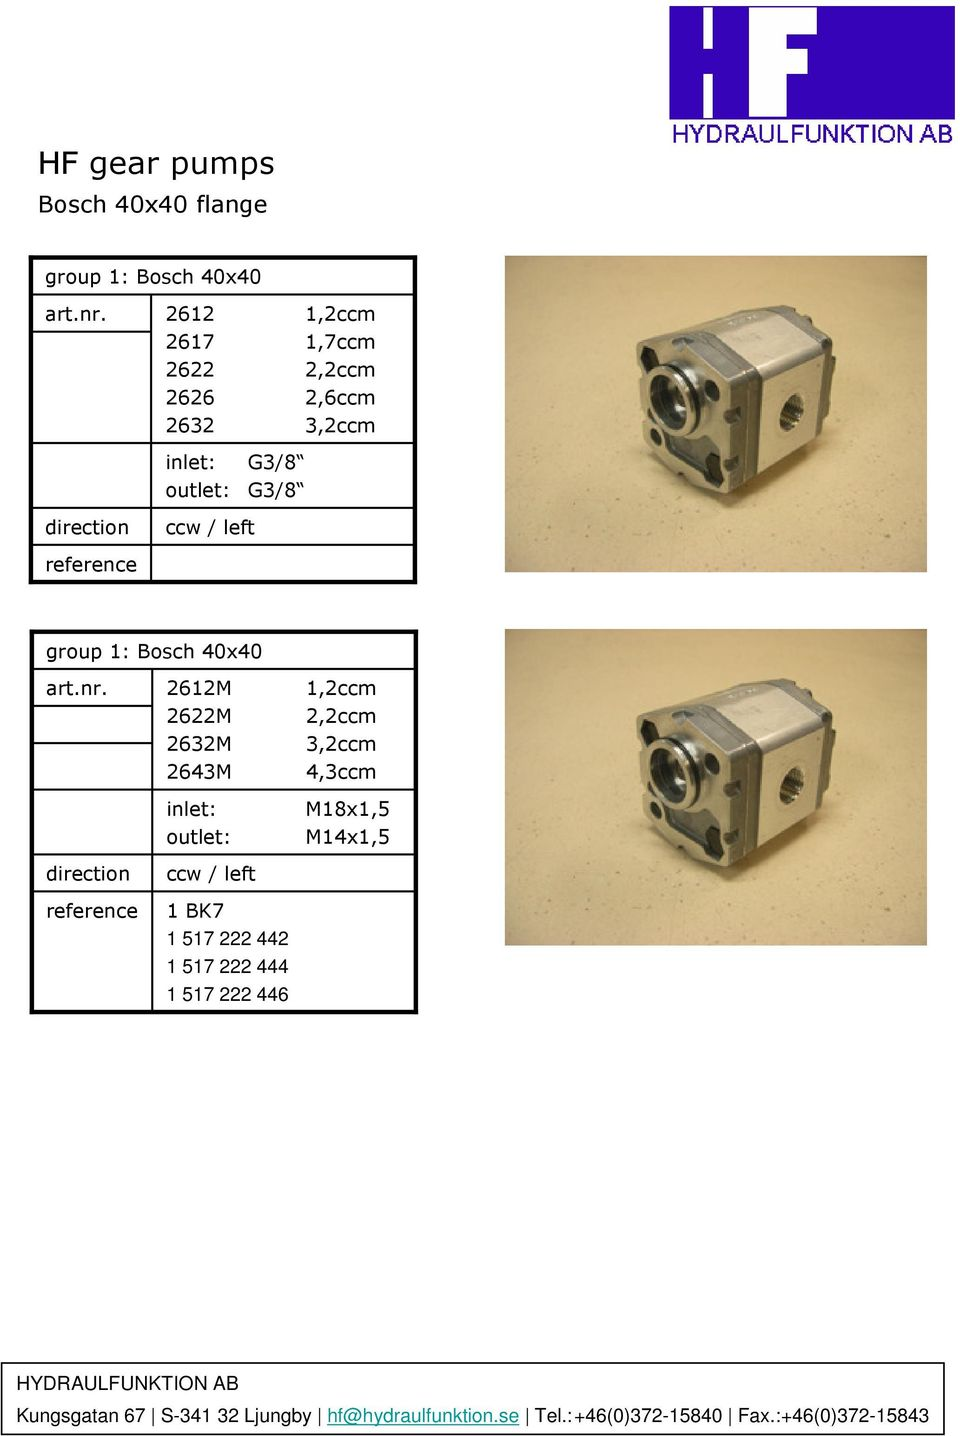 Hf Gear Pumps Hydraulfunktion Can Offer A Small Range Of Hydraulic Barnes Pump Wiring Diagram For Bosch 40x40 2612m 2622m 2632m 2643m Inlet Outlet 1 Bk7 517 222